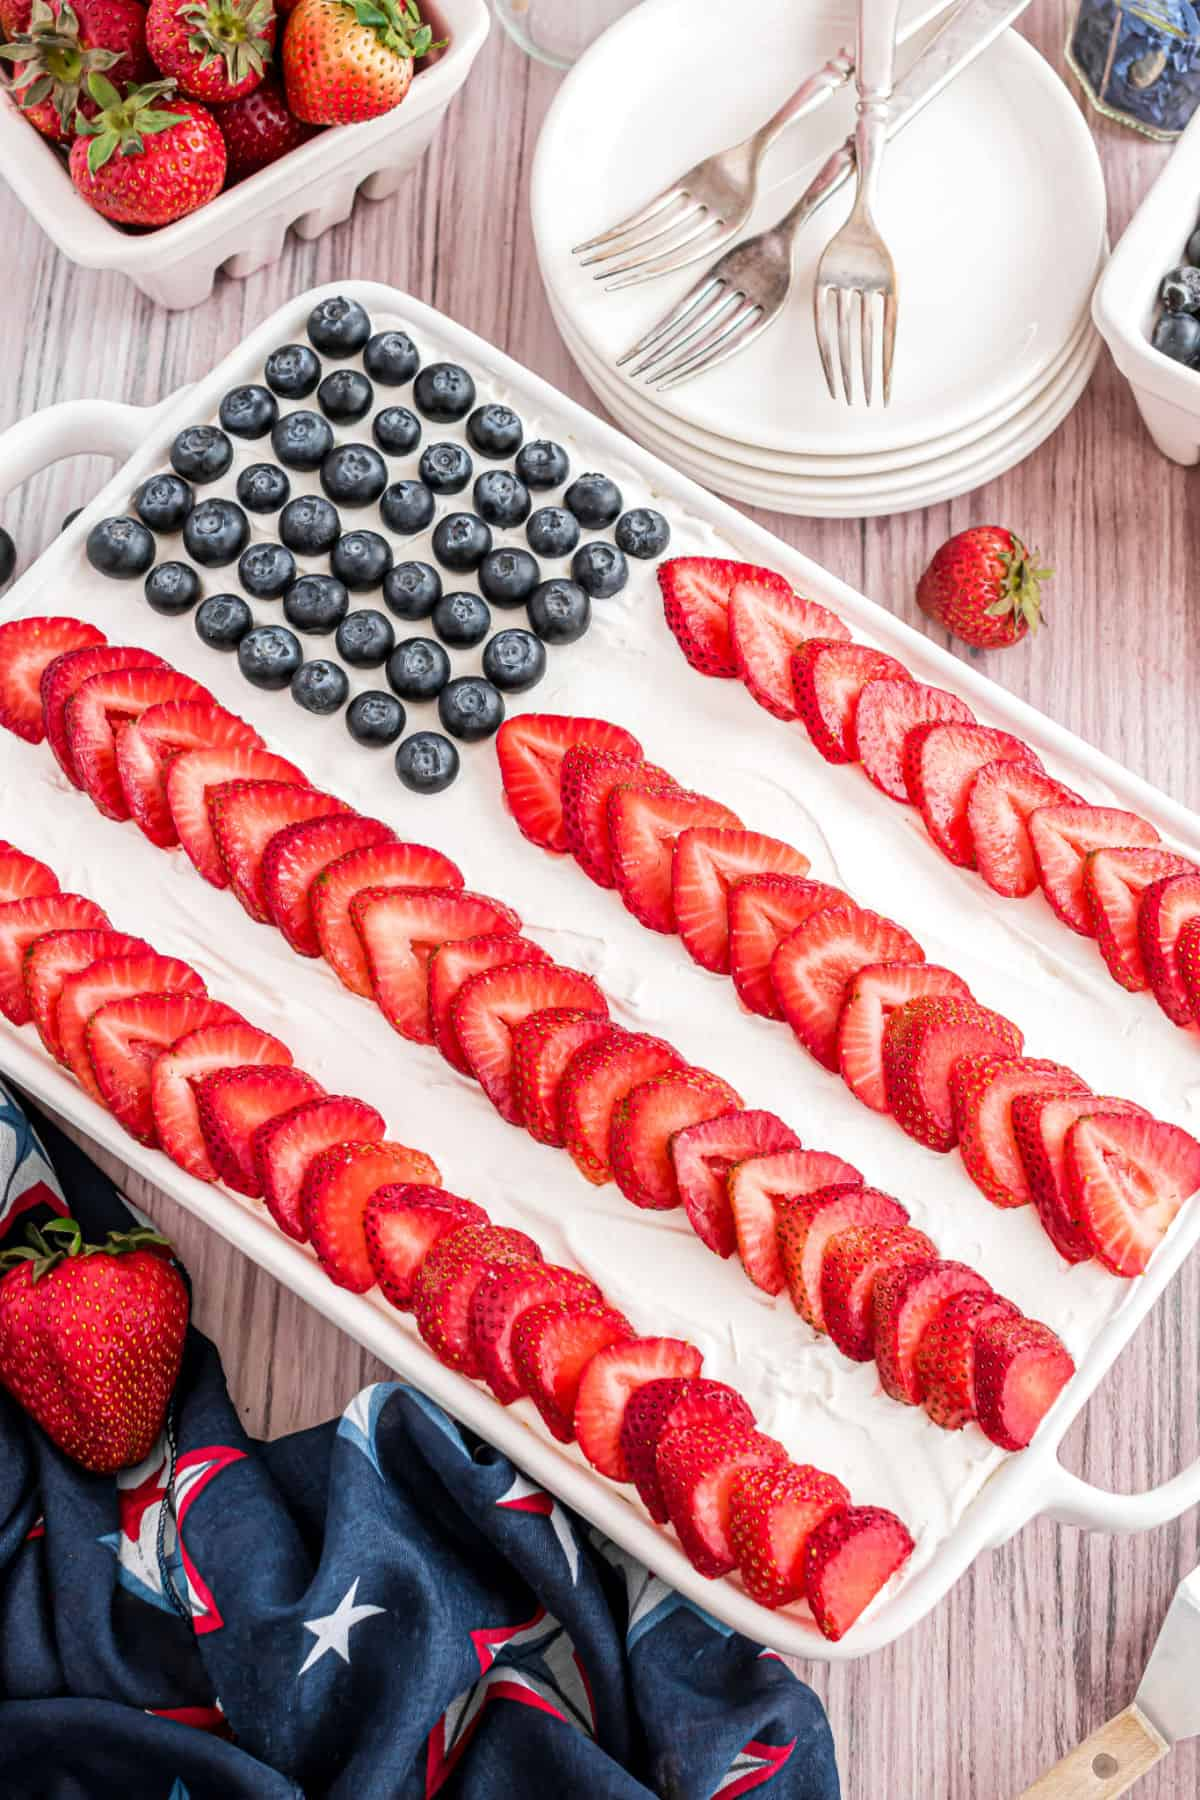 Red white and blue flag cake using whipped cream, blueberries, and strawberry slices.